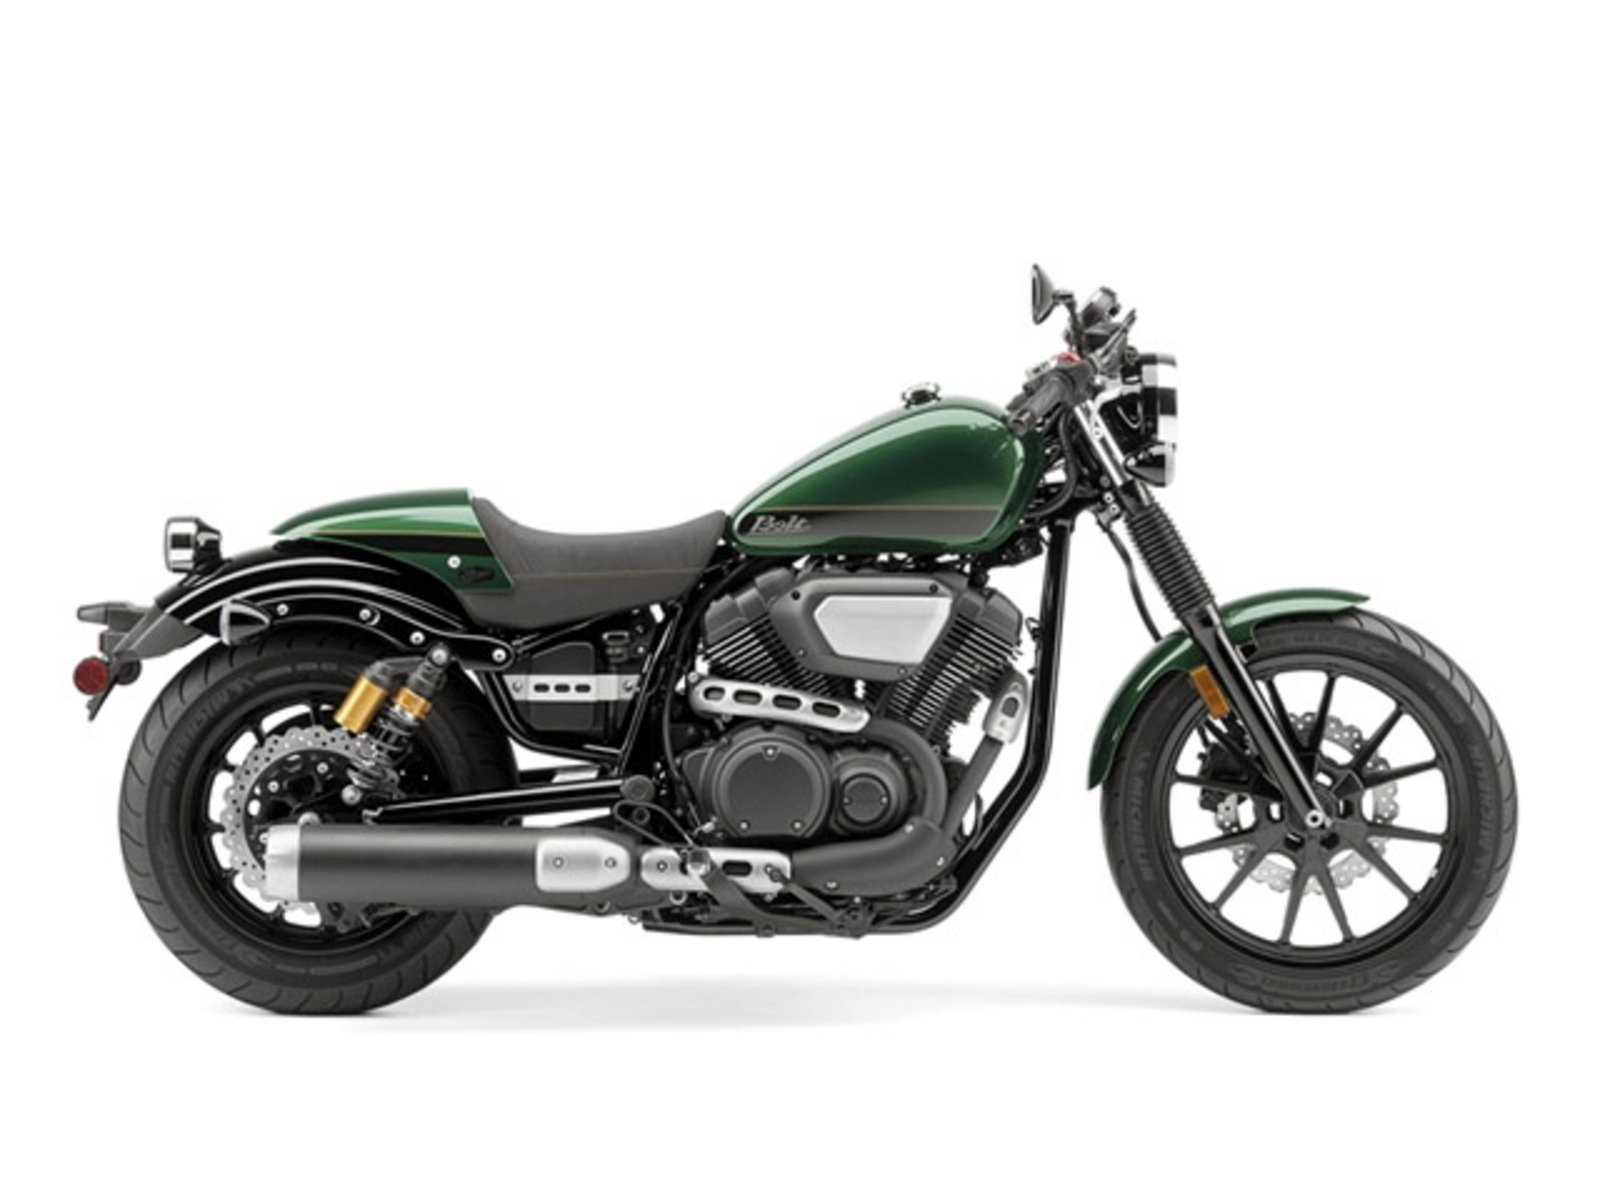 Star Motorcycles: Models, Prices, Reviews, News